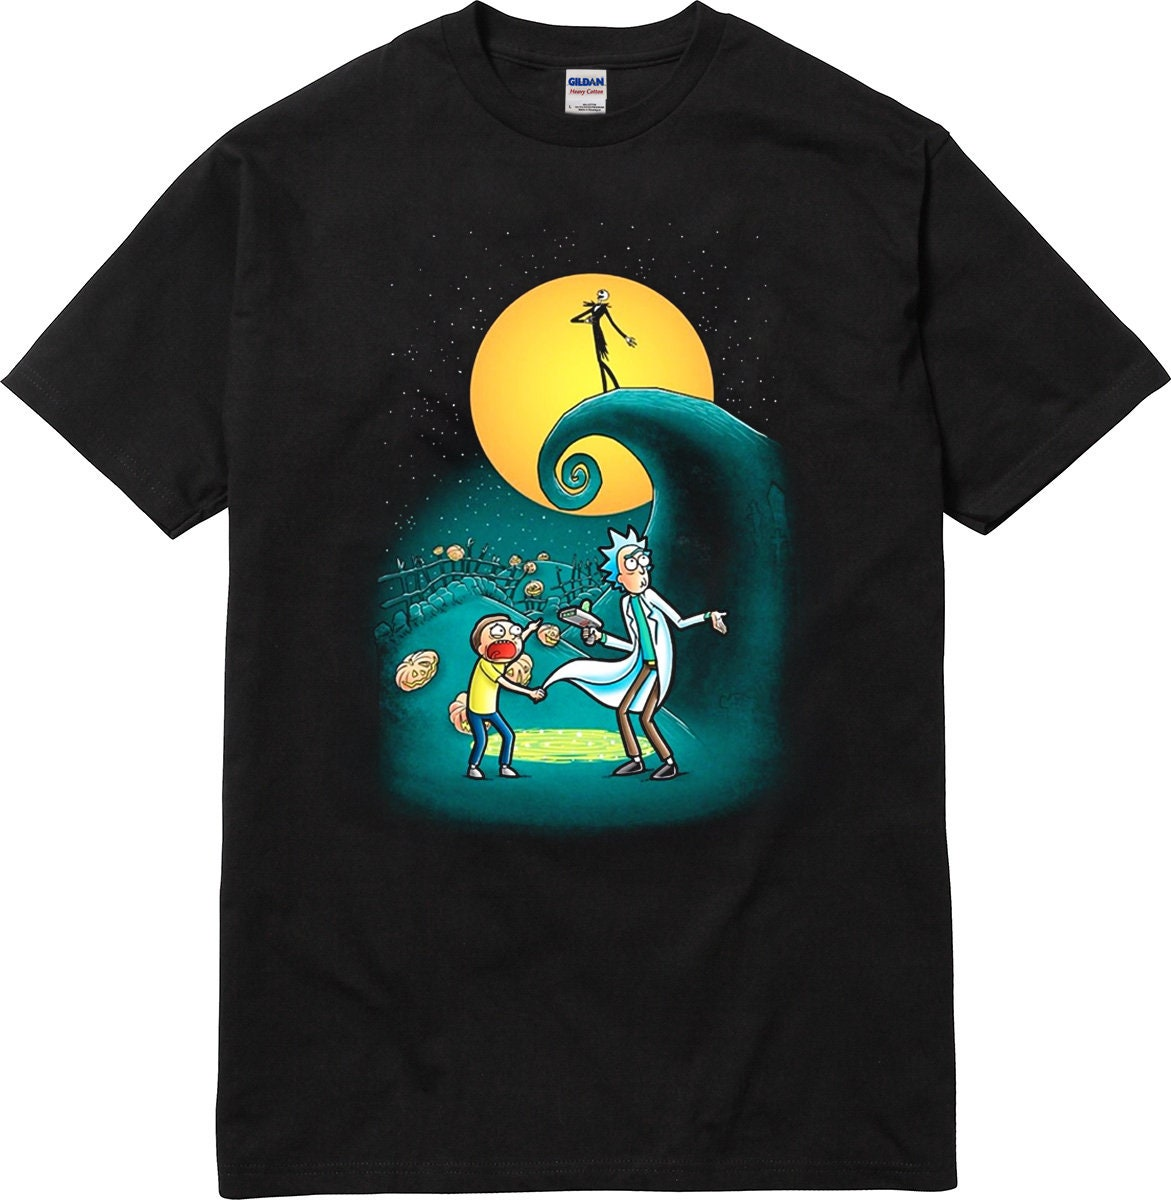 Rick and Morty Portal Nightmare Before Christmas T-Shirt | Etsy